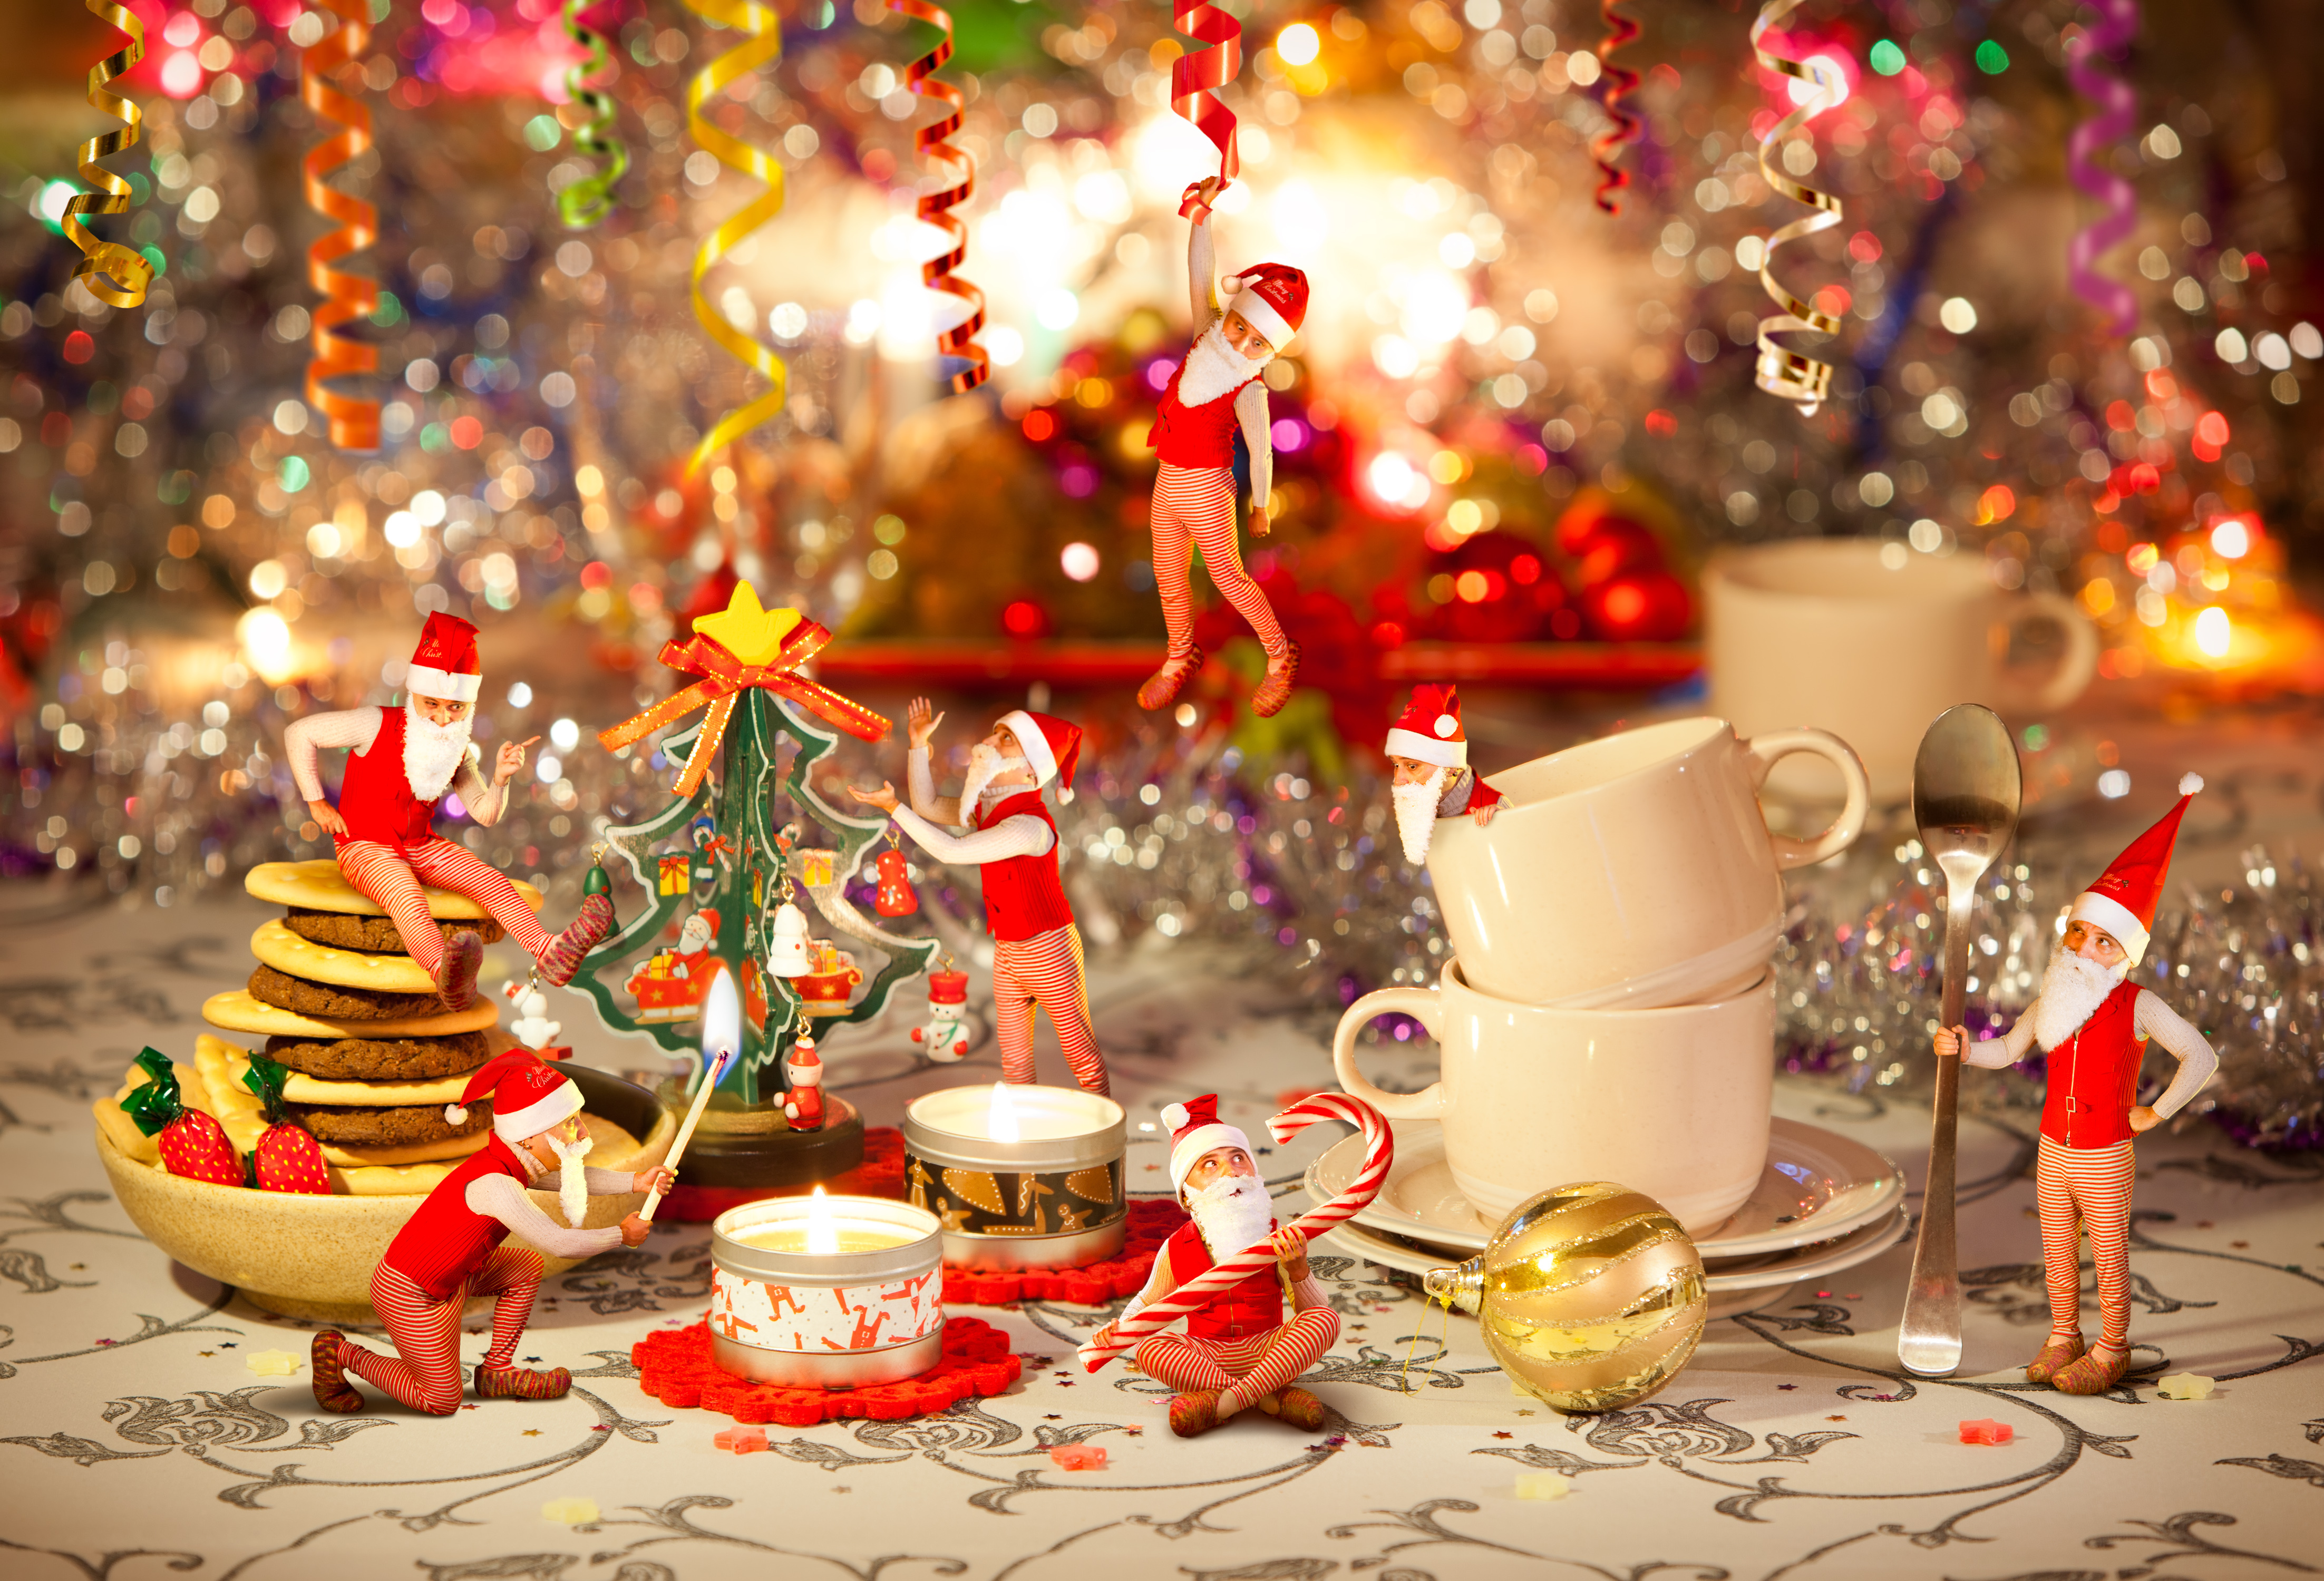 How Many Days Left For Christmas.Countdown To Christmas At Tinselbox How Many Days Are Left